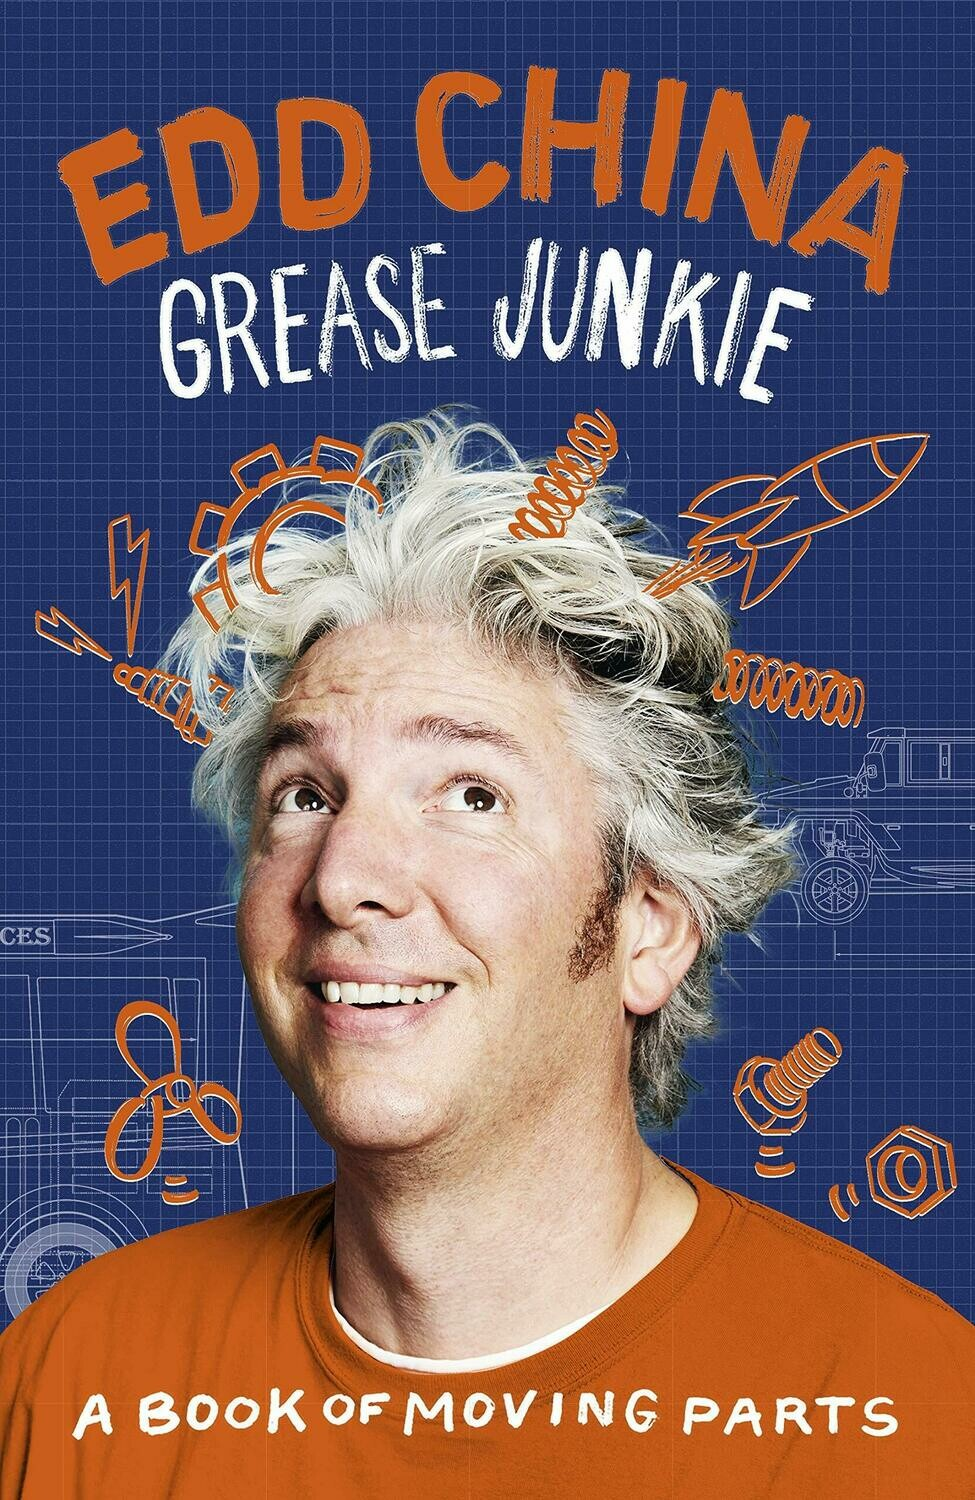 Grease Junkie: A book of moving parts, by Edd China - Hardcover Signed by Edd